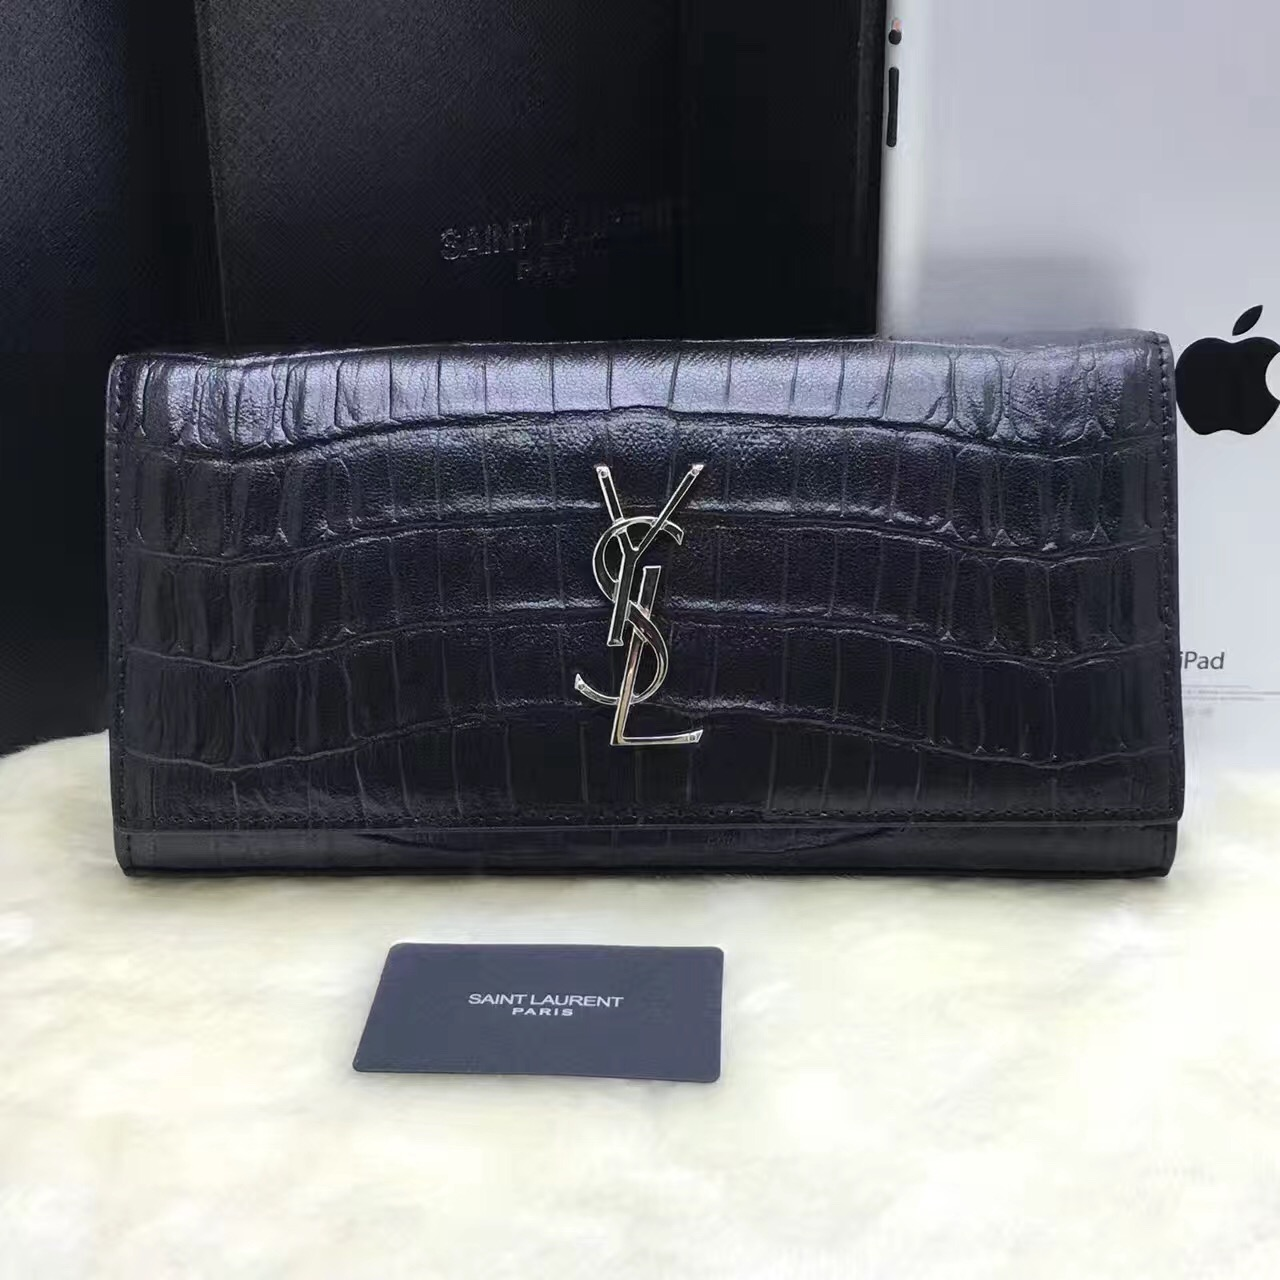 YSL Clutch 27cm Croco Leather Black Silver